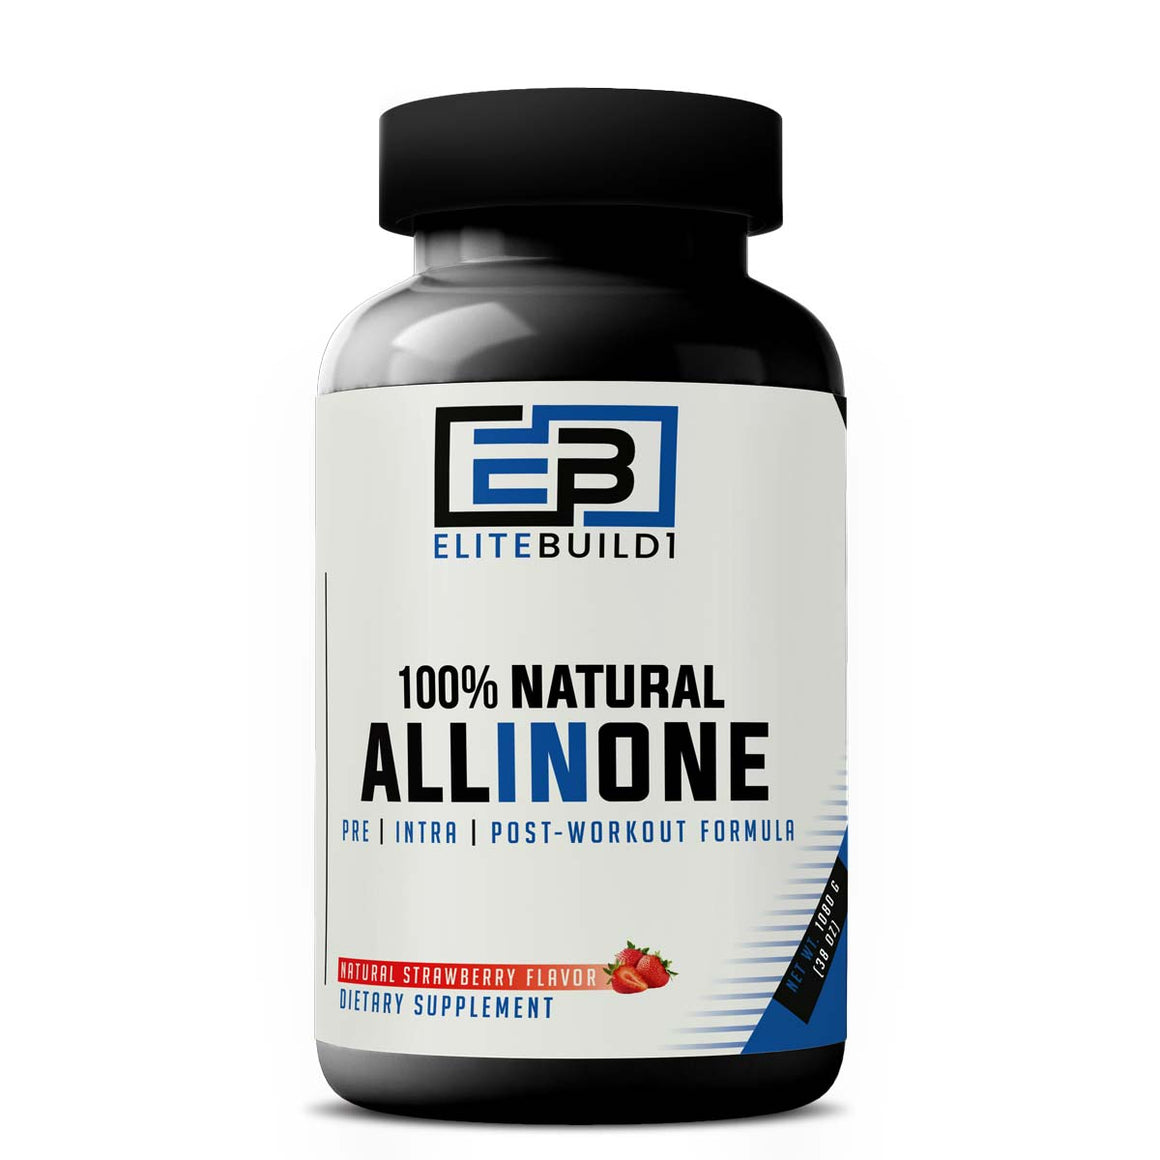 EliteBuild1 All-in-one Supplement